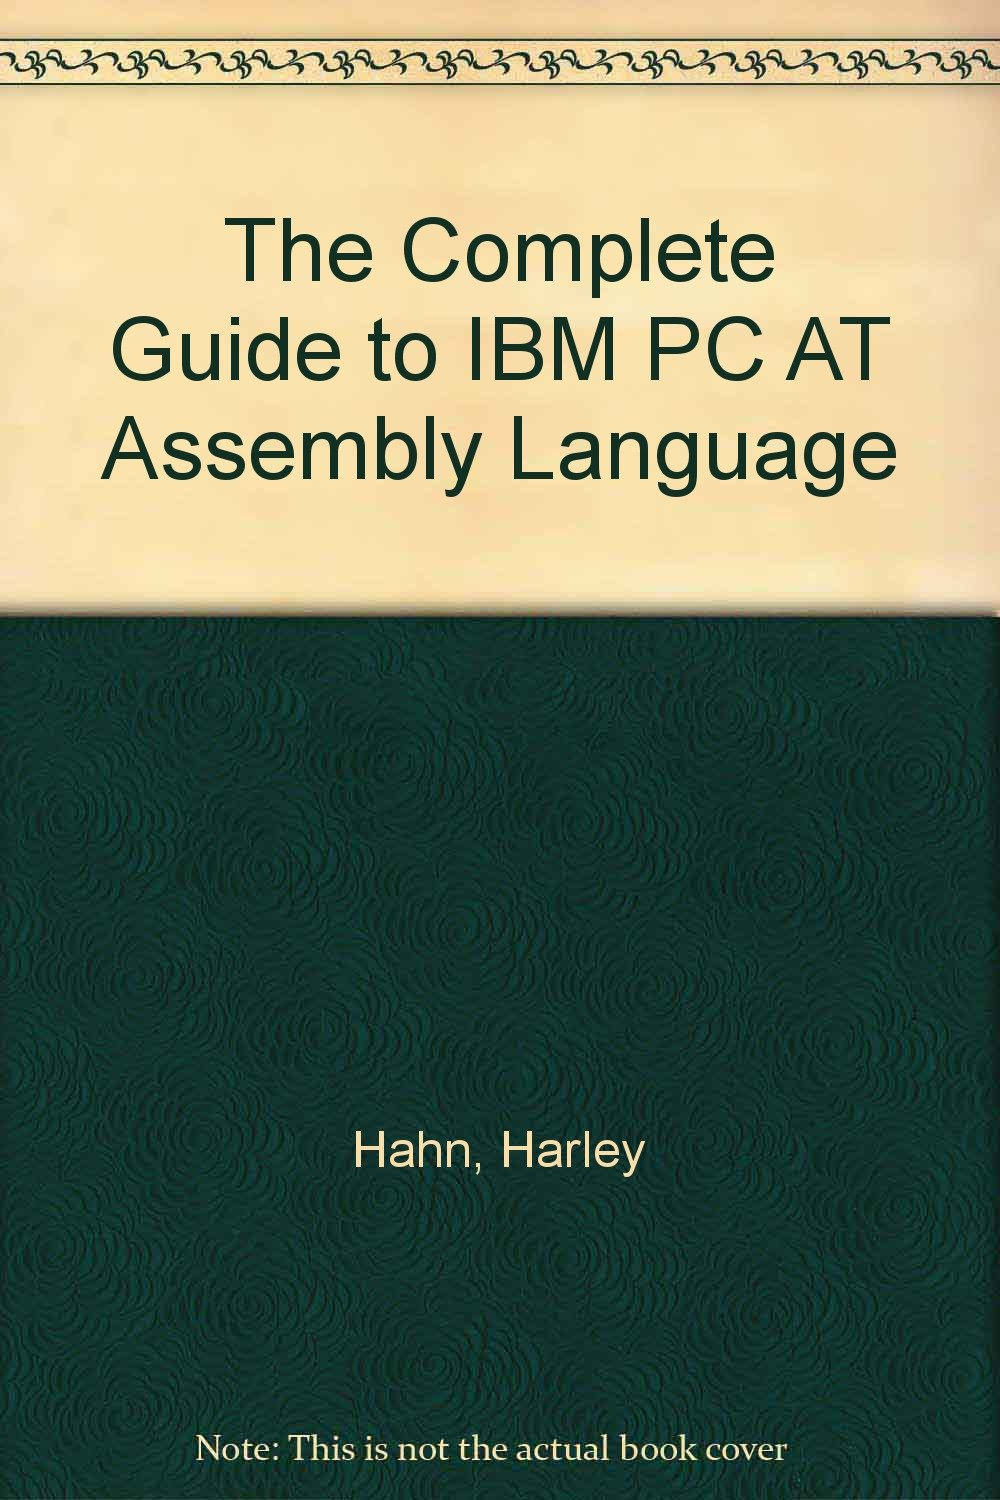 The Complete Guide to IBM PC AT Assembly Language: Harley Hahn